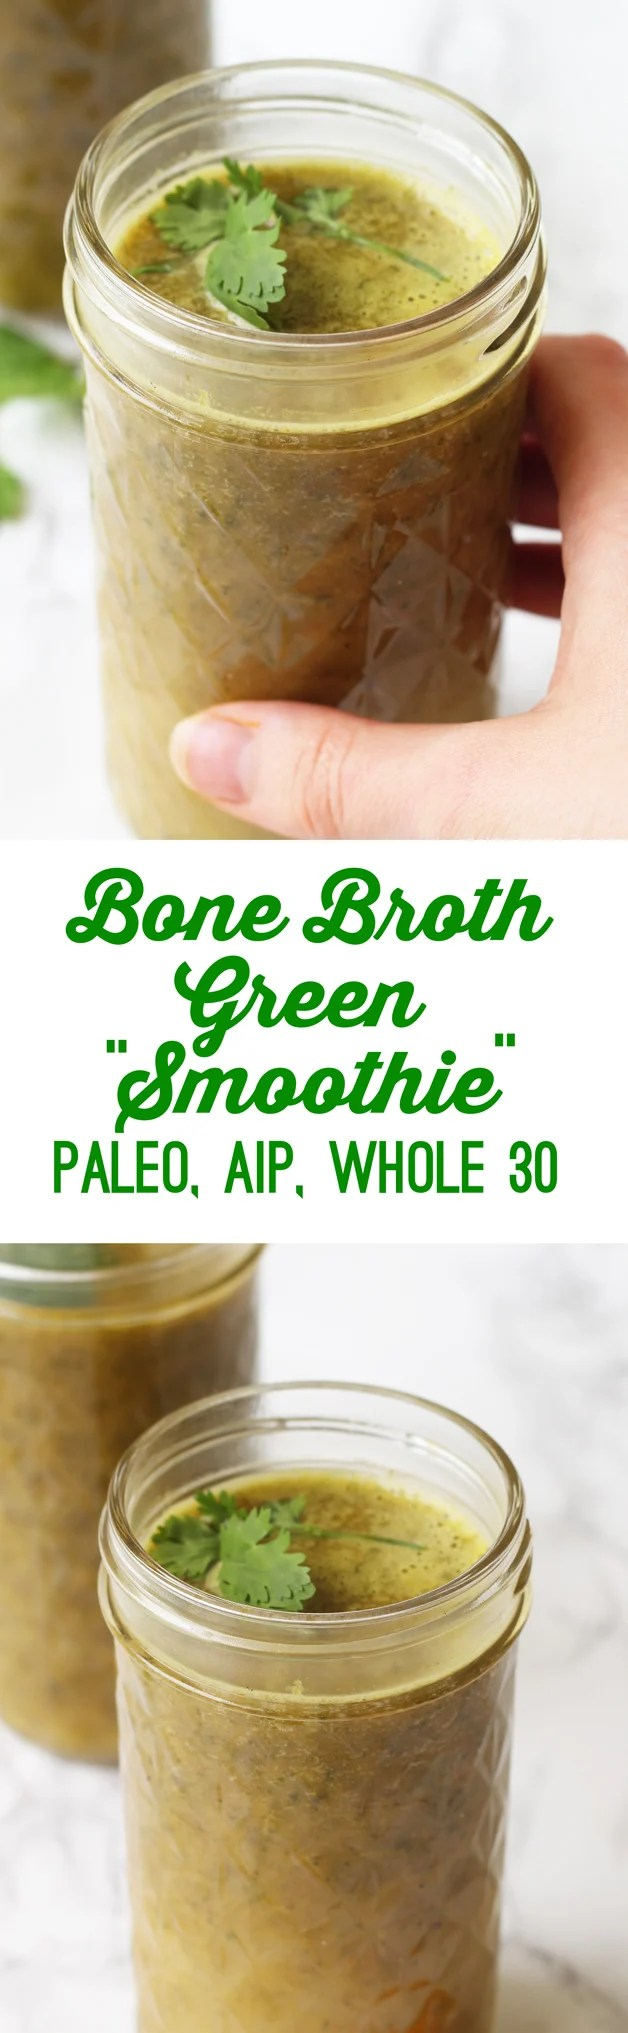 "Bone Broth Green ""Smoothie"" Drink (Paleo, AIP, Whole 30)"